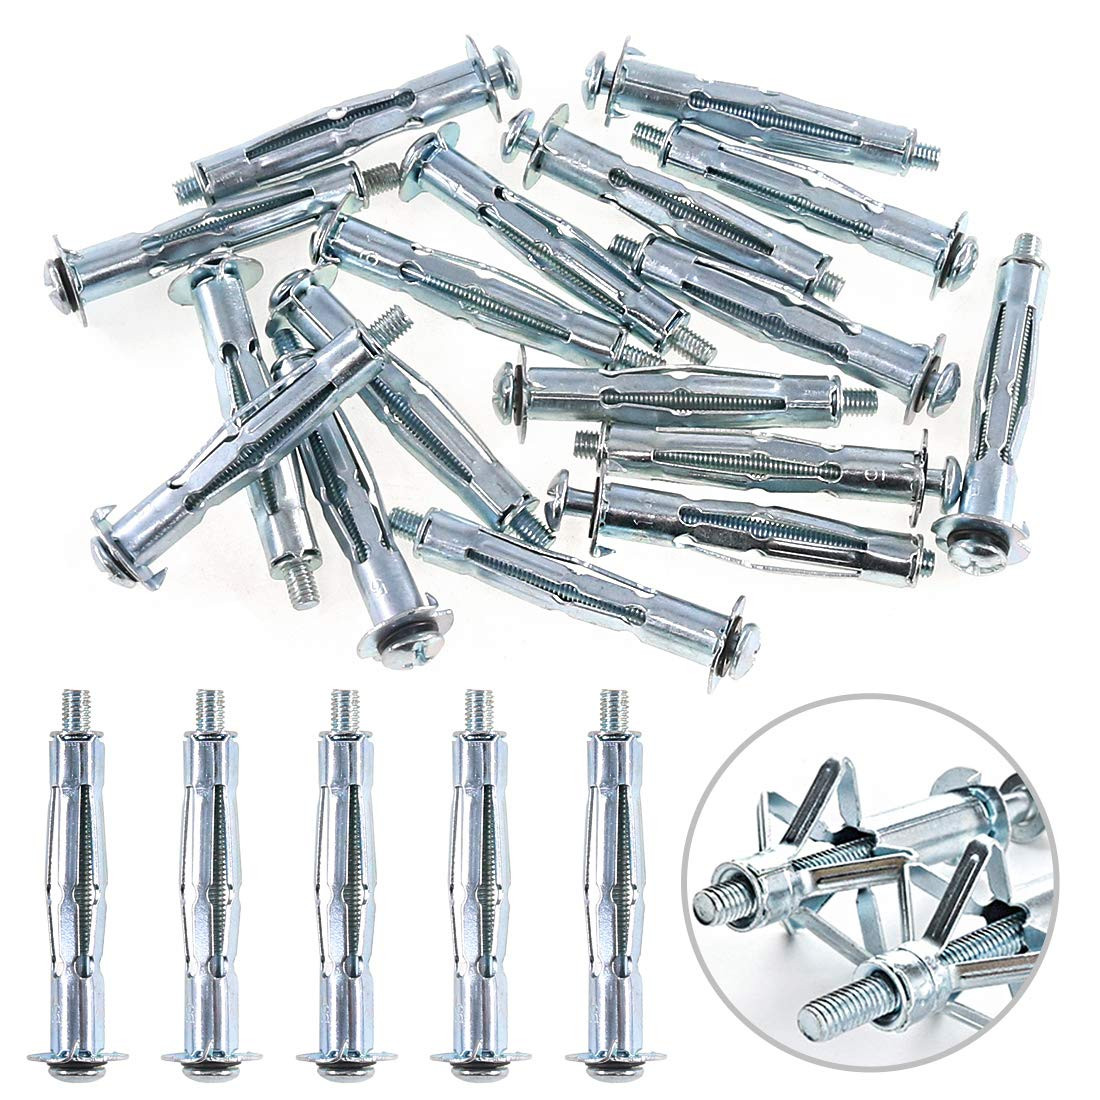 Glarks 30Pcs 5x52MM Heavy Duty Zinc Plated Steel Molly Bolt Hollow Drive Wall Anchor Screws Set for Drywall, Plaster and Tile (M5x52)